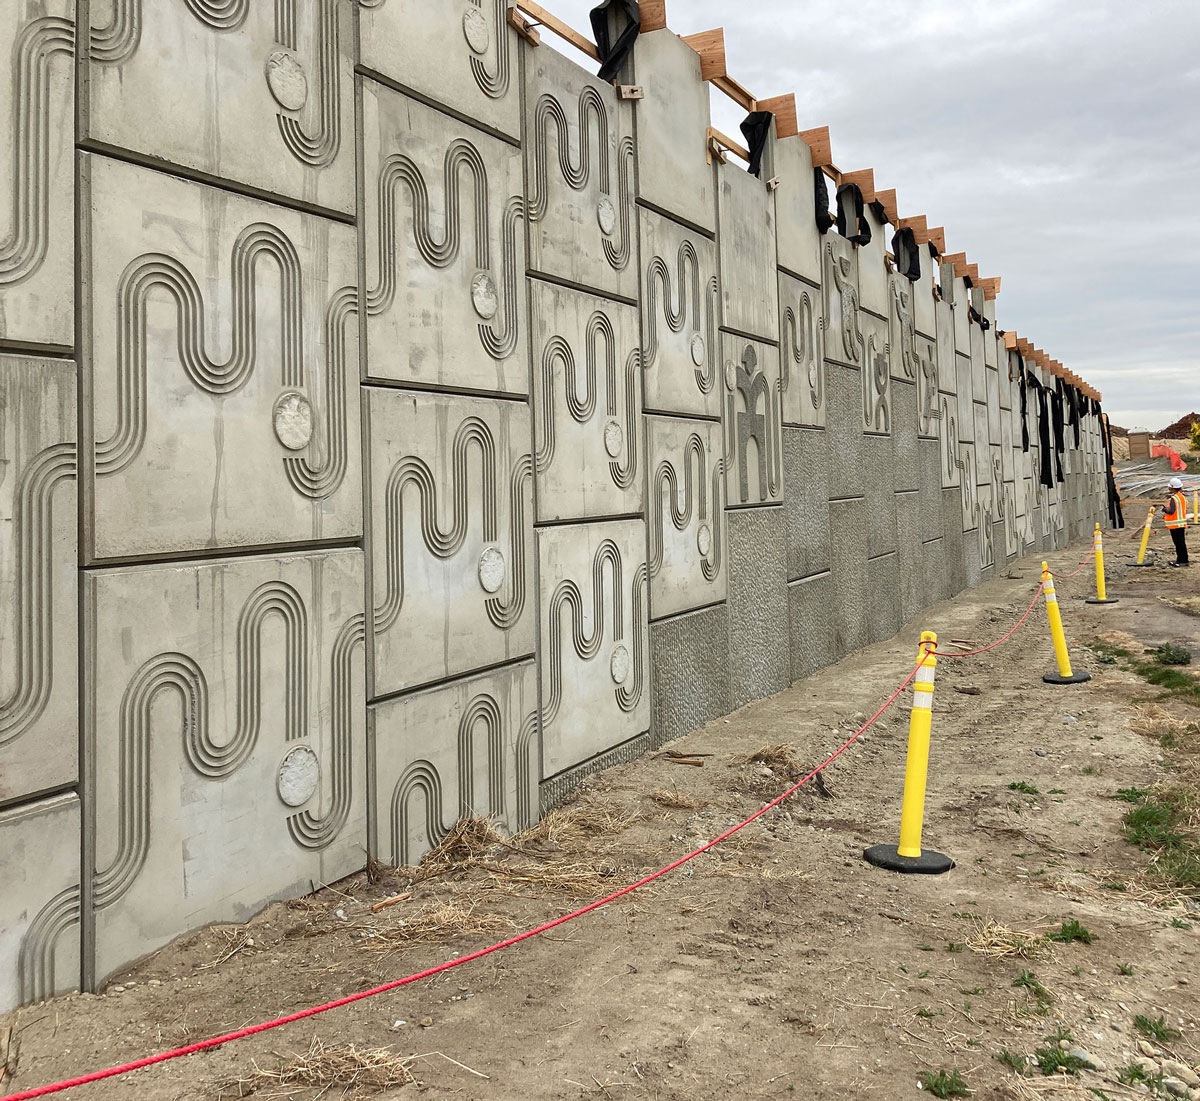 An art installation in a concrete wall.